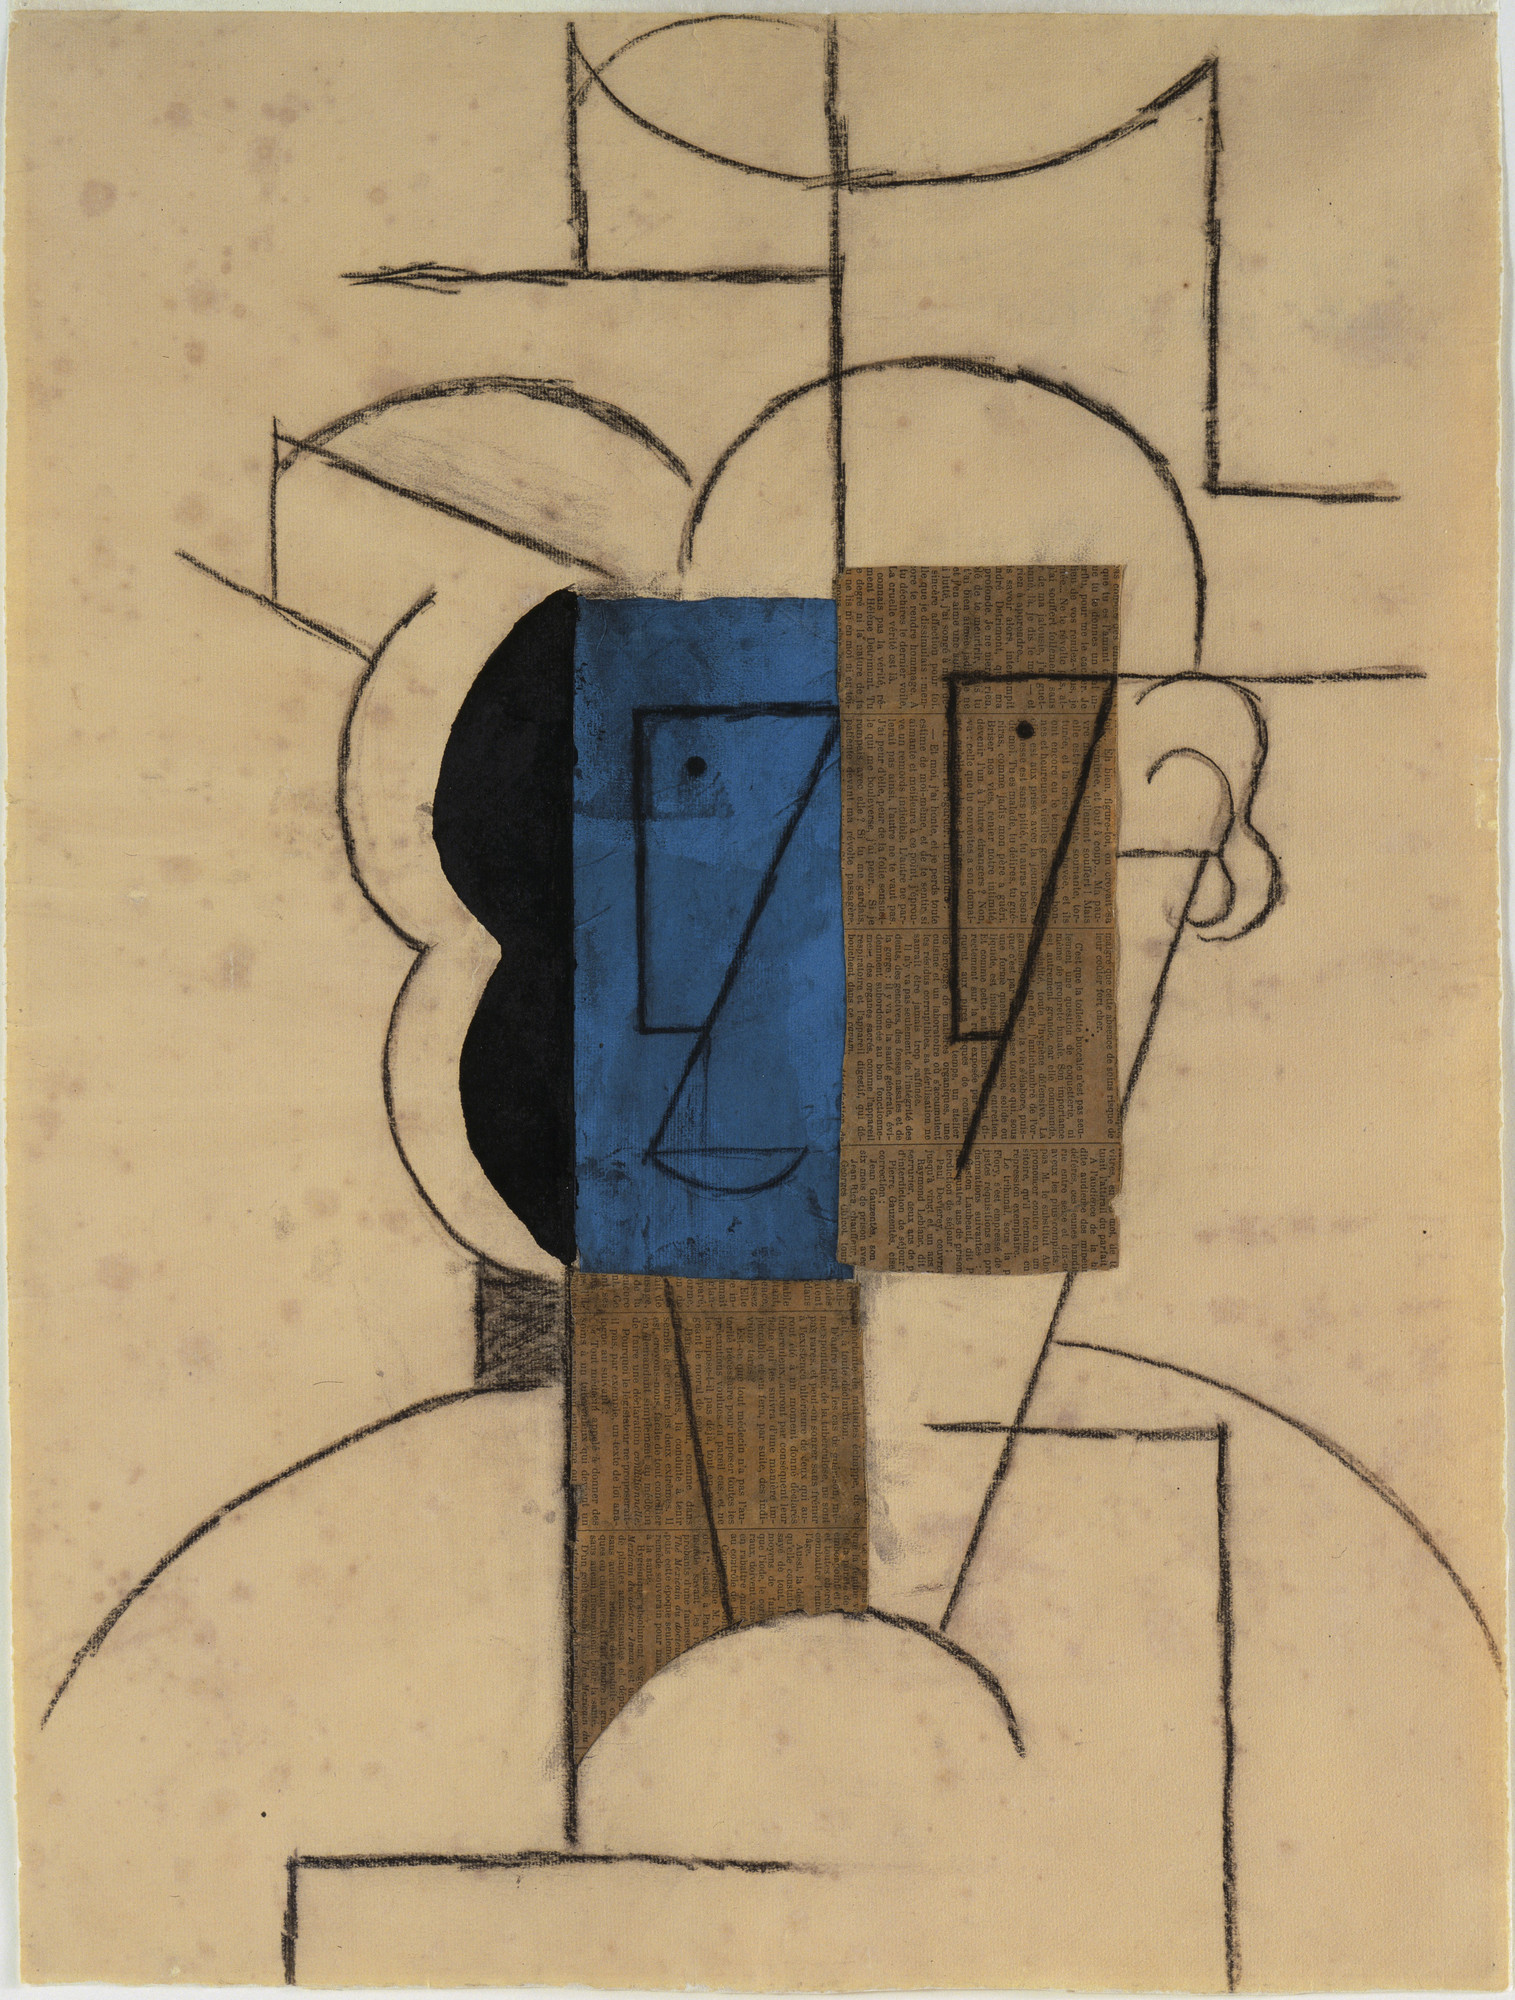 Pablo Picasso. Head of a Man with a Hat. Paris, December 1912